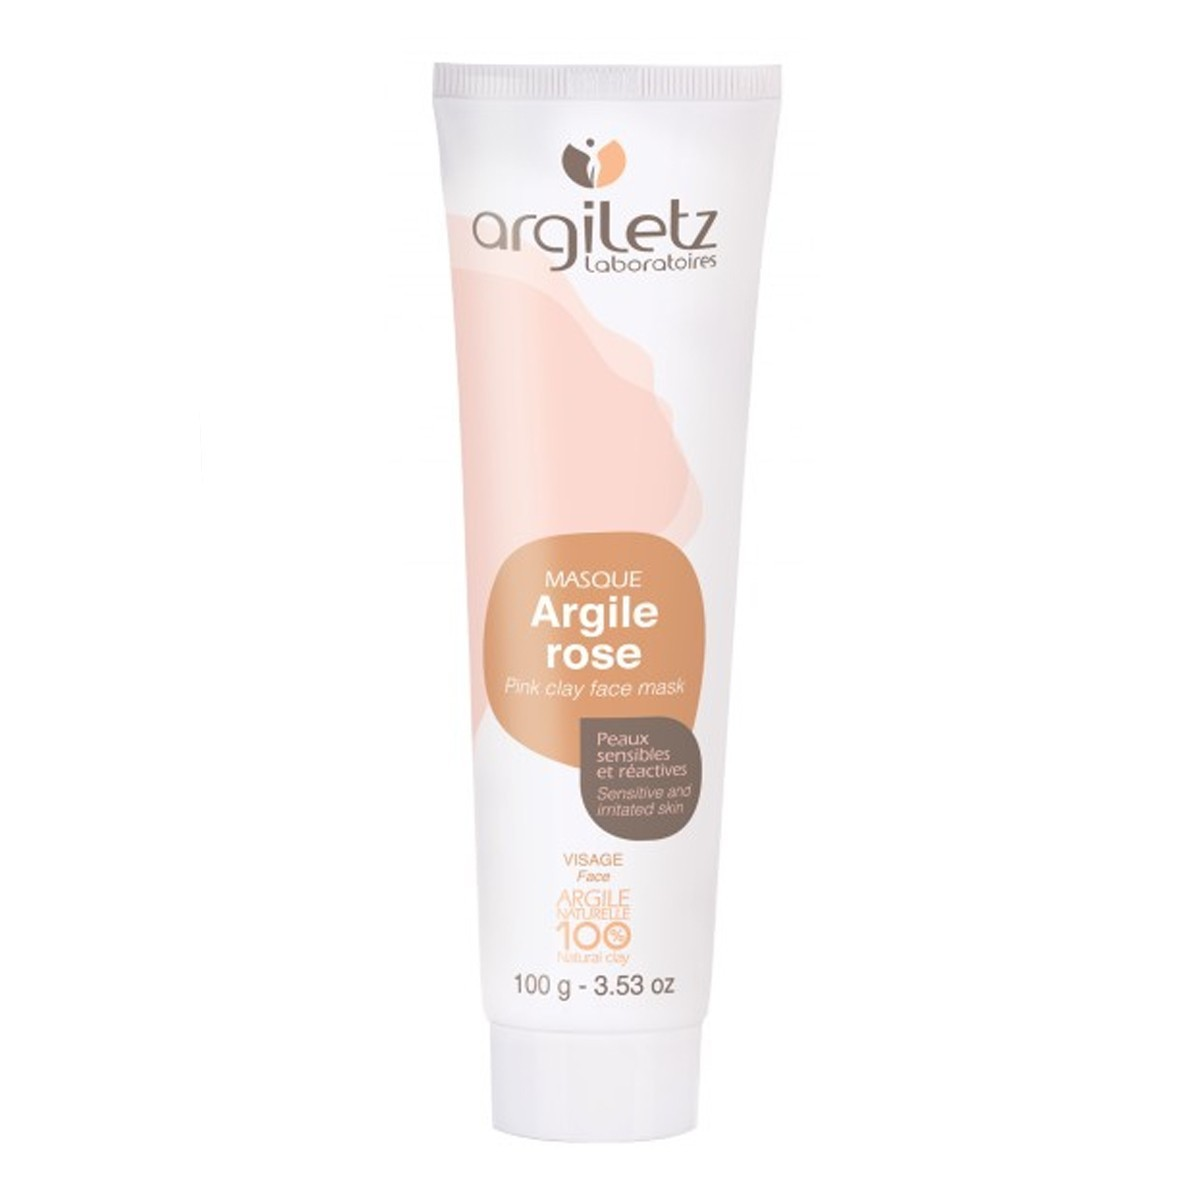 masque pour le visage l 39 argile rose 100 g argiletz. Black Bedroom Furniture Sets. Home Design Ideas